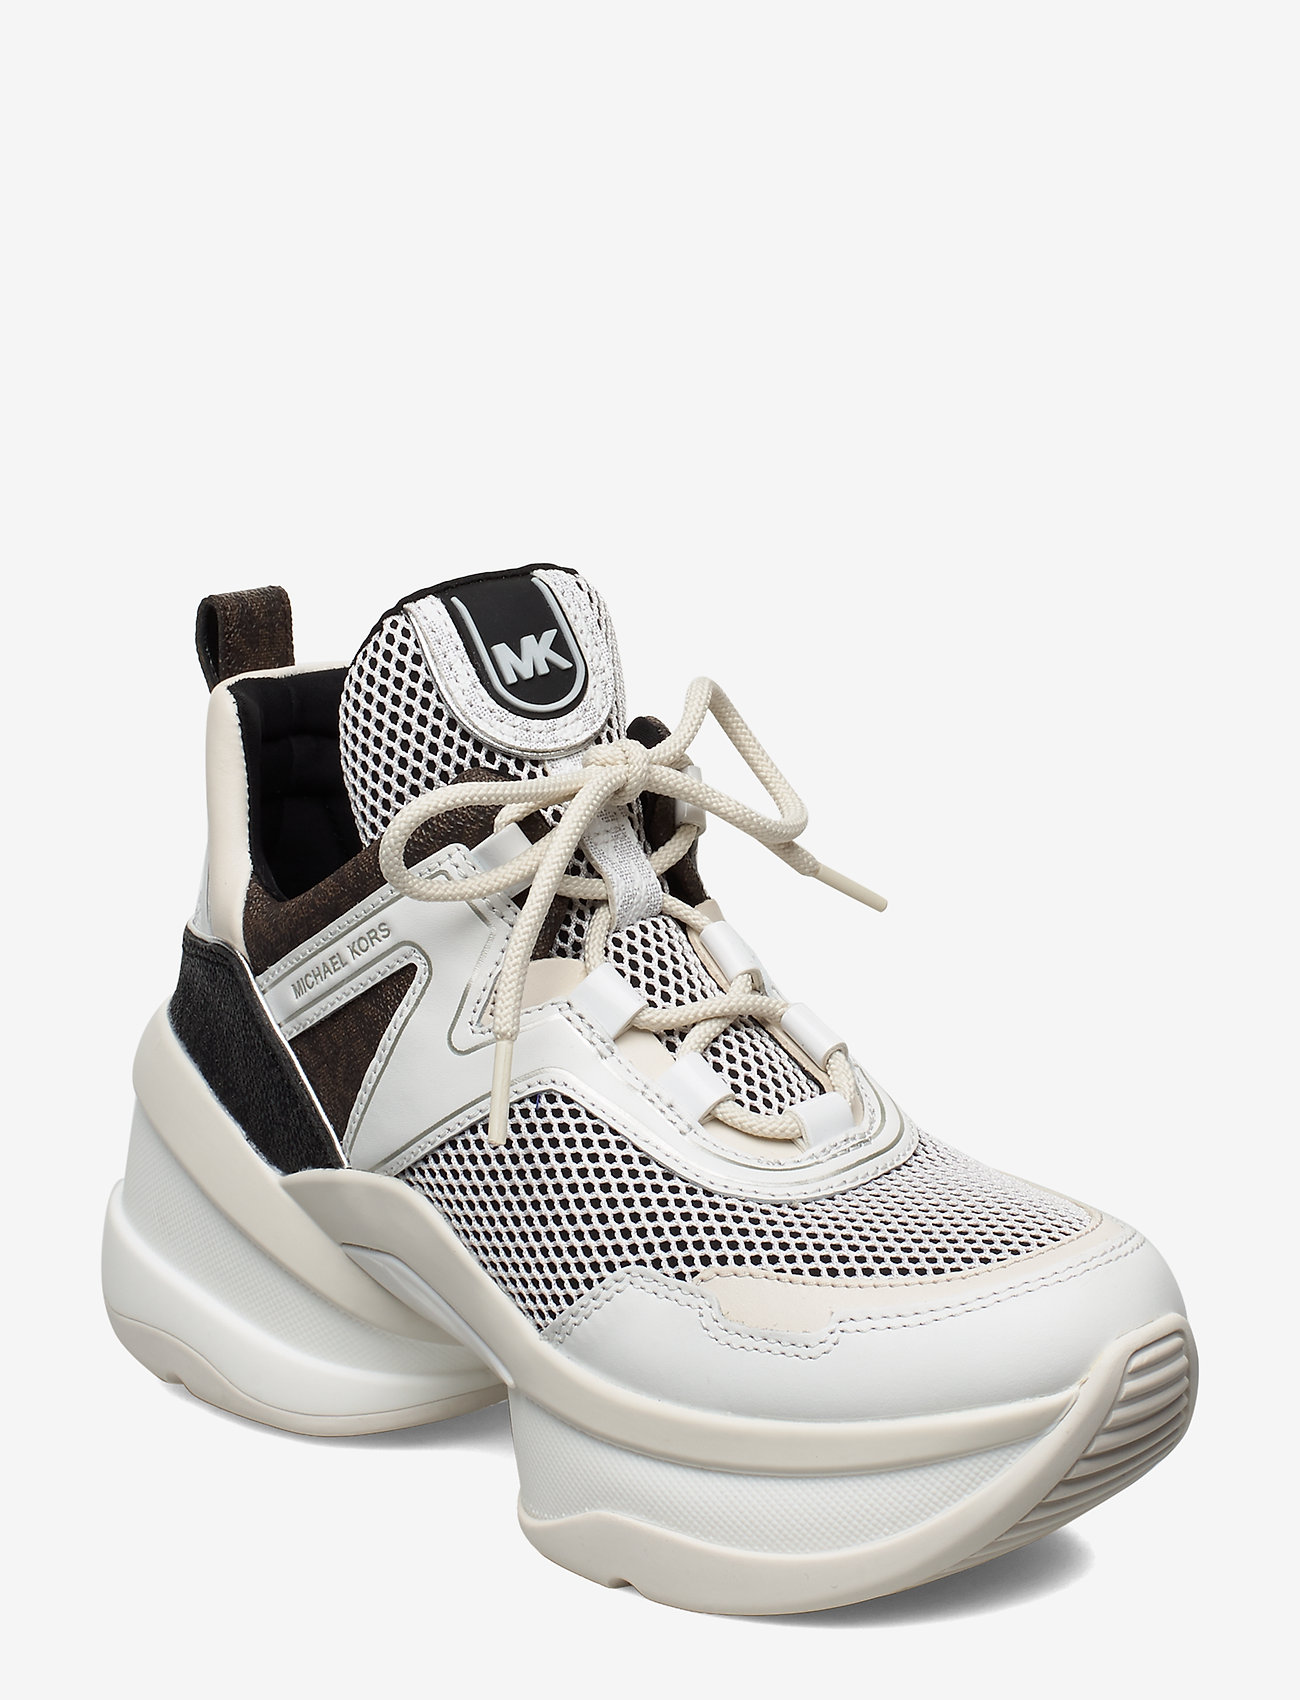 Michael Kors Shoes - OLYMPIA TRAINER - chunky sneakers - blk/opticwht